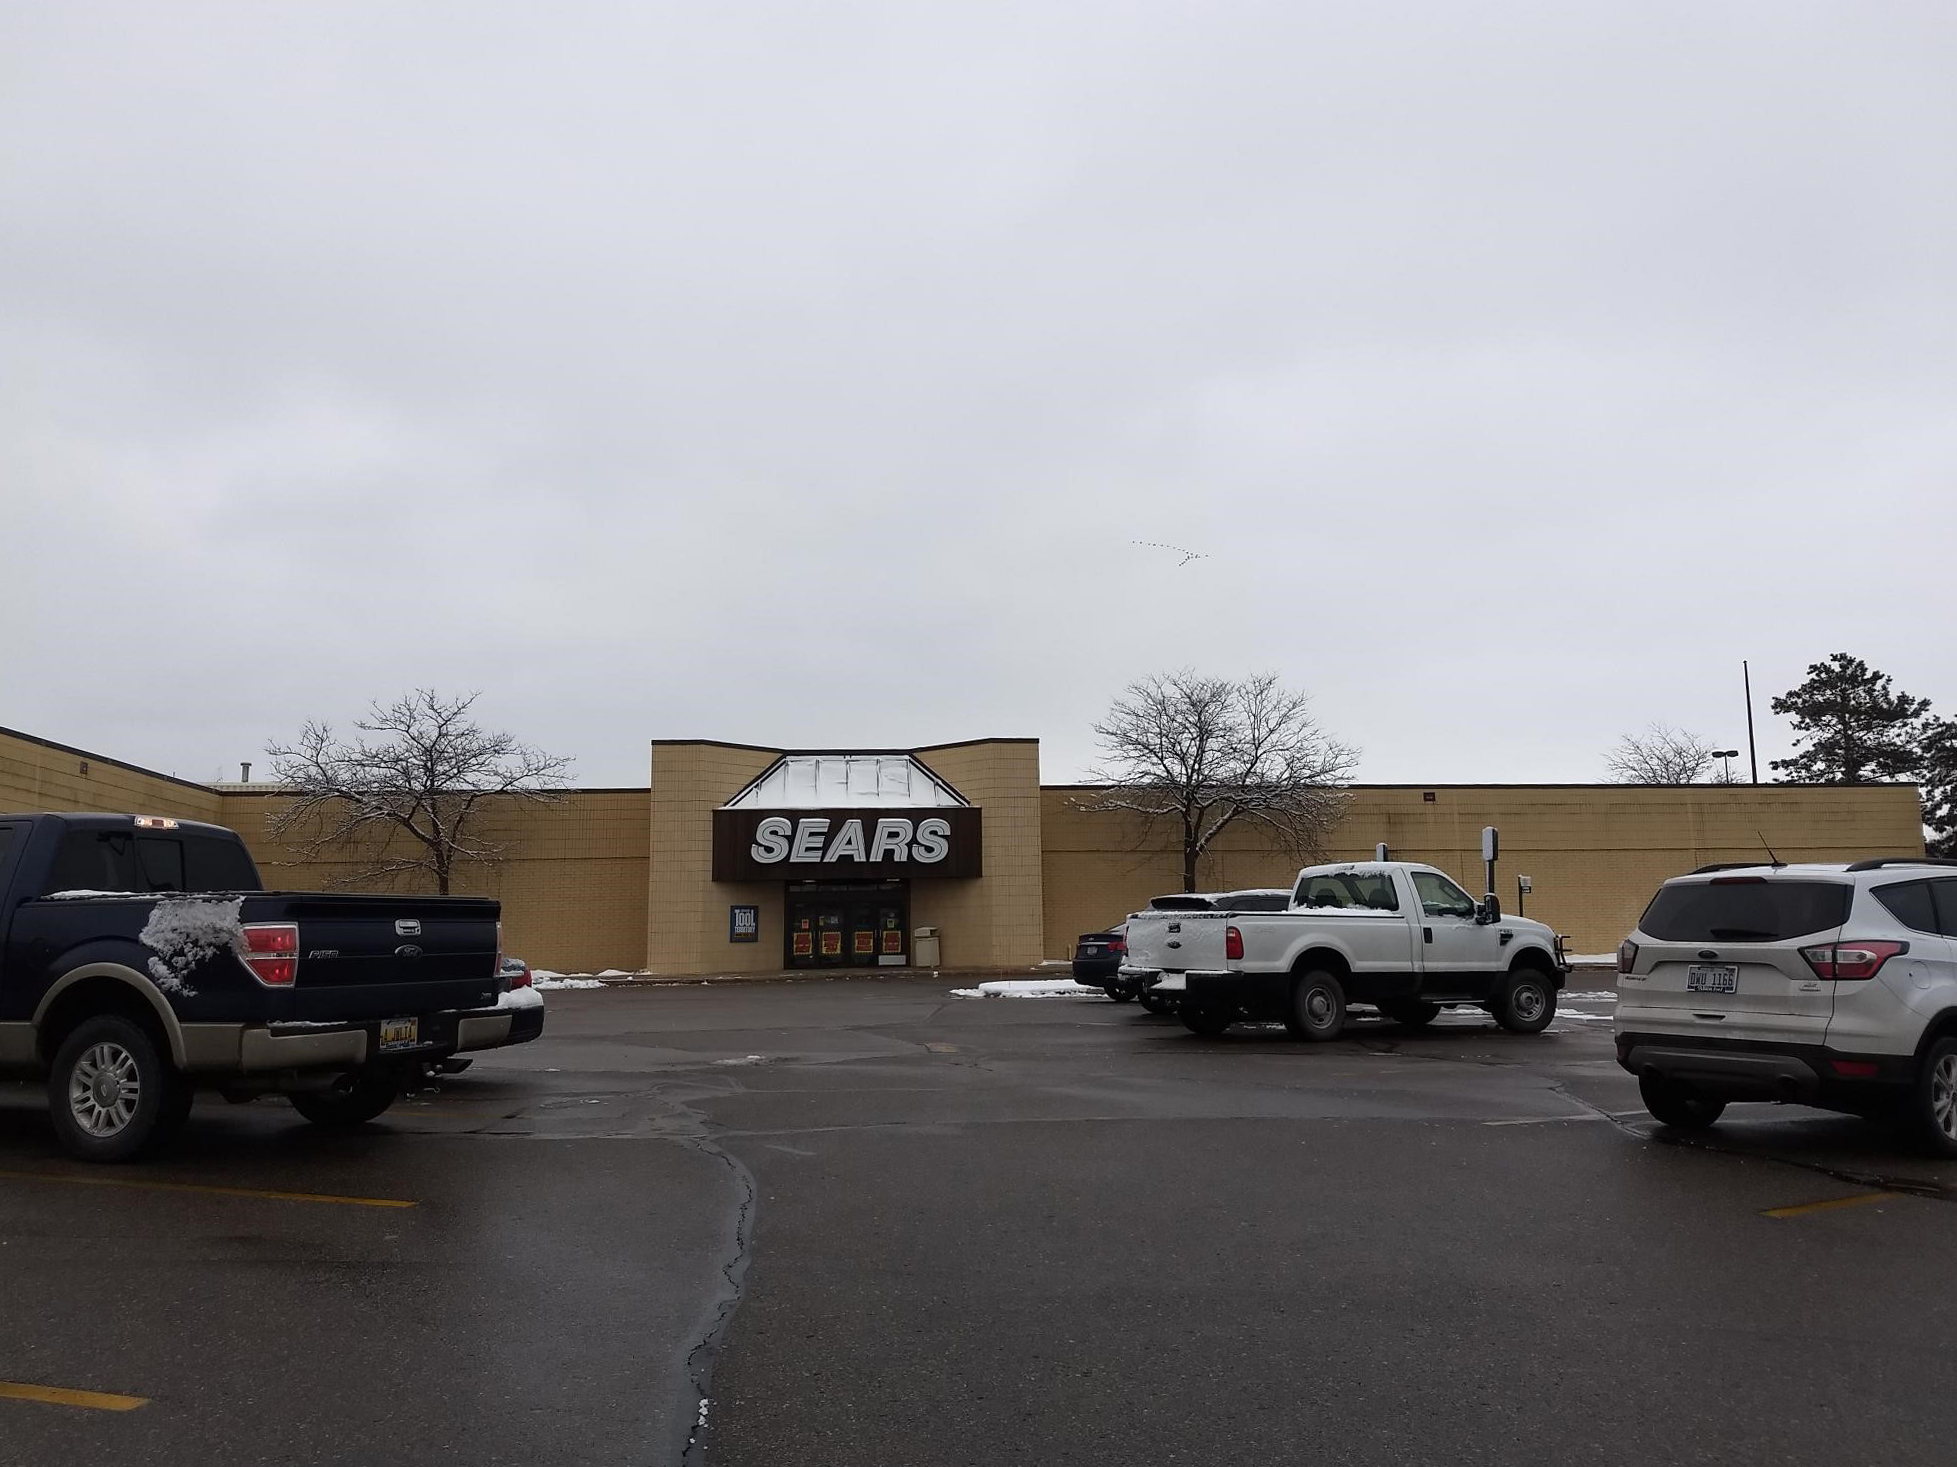 5575 Beckley Rd N,Battle Creek,Michigan 49015,Retail,Sears,5575 Beckley Rd N ,1019